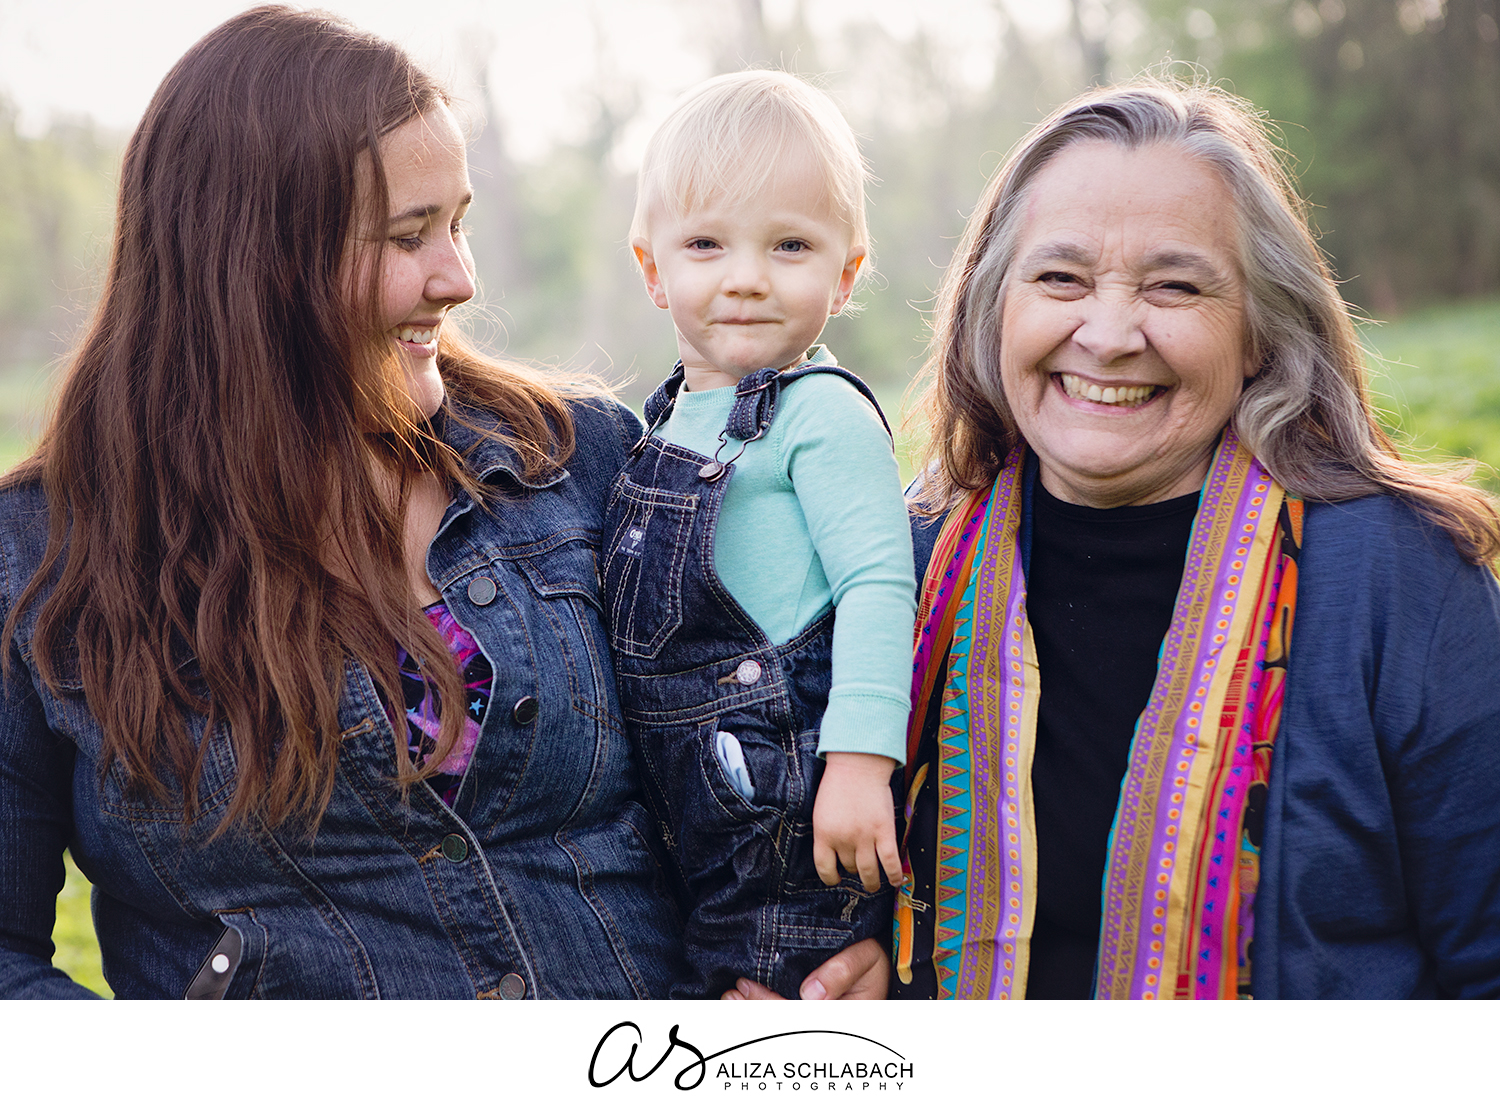 Happy portrait of a little boy with his Aunt and Grandma